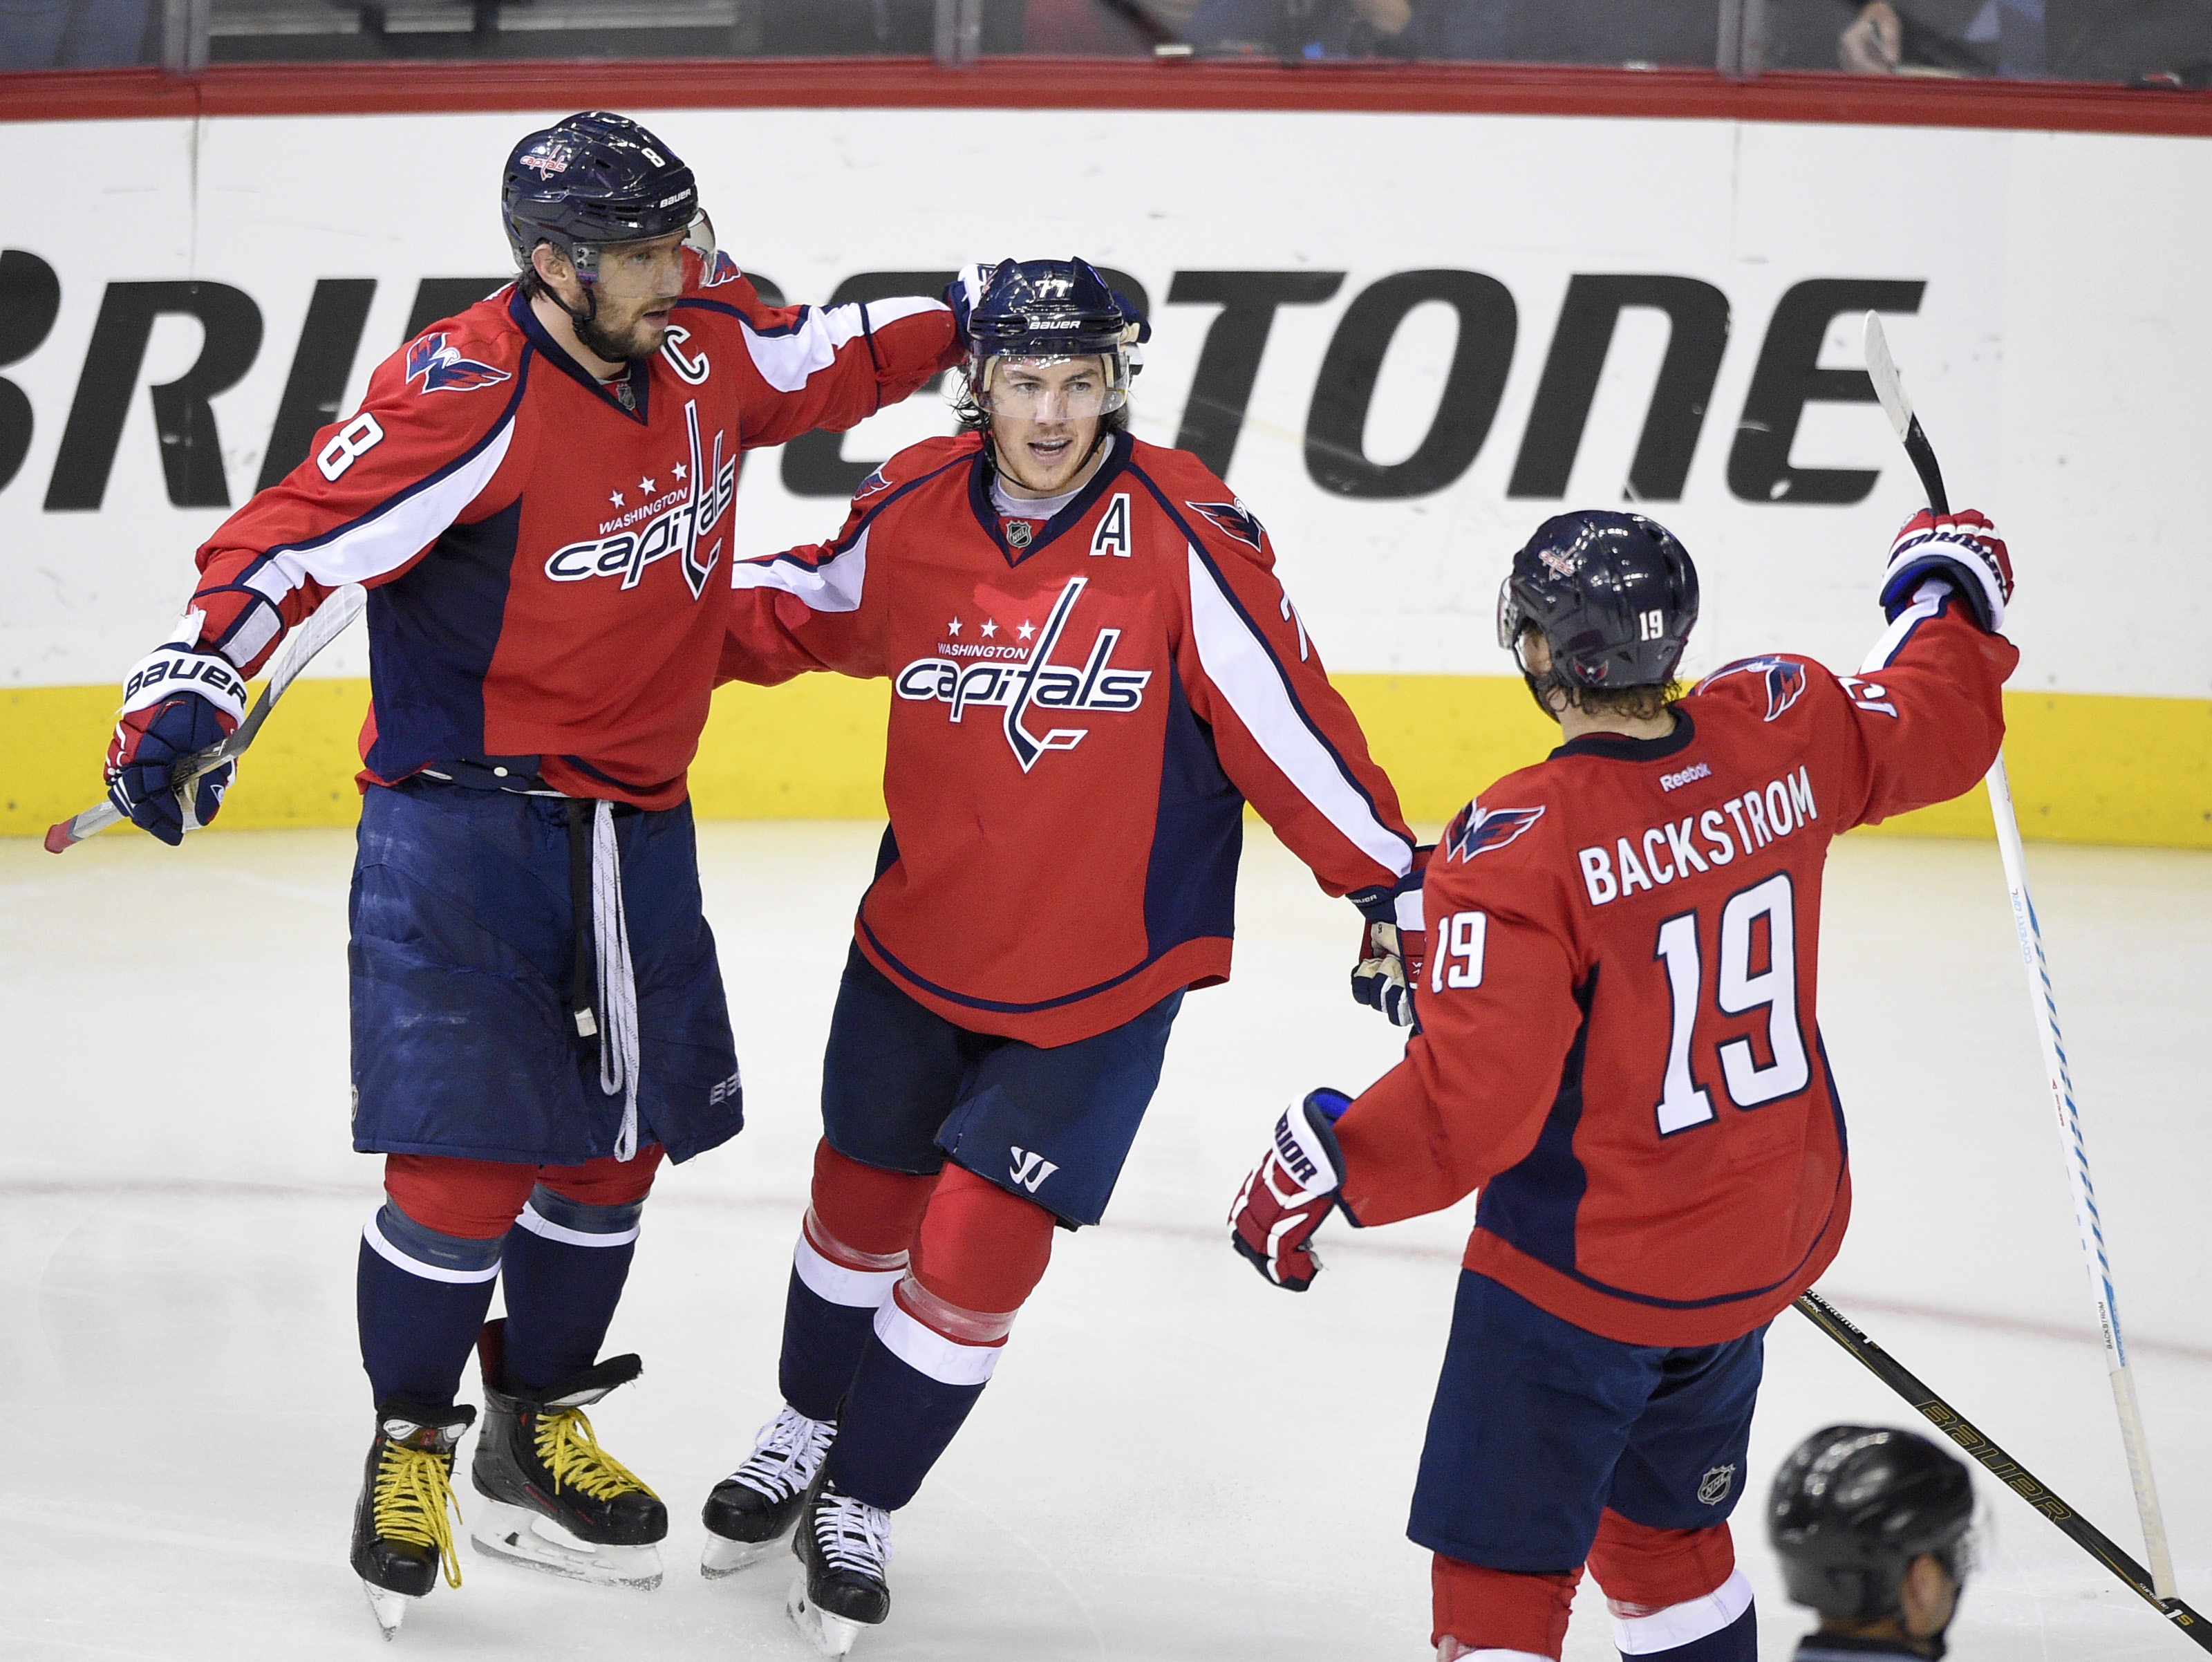 Washington Capitals right wing T.J. Oshie, center, celebrates his goal with Alex Ovechkin (8), of Russia, and Nicklas Backstrom (19), of Sweden, during the second period of Game 5 in an NHL hockey Stanley Cup Eastern Conference semifinals against the Pitt